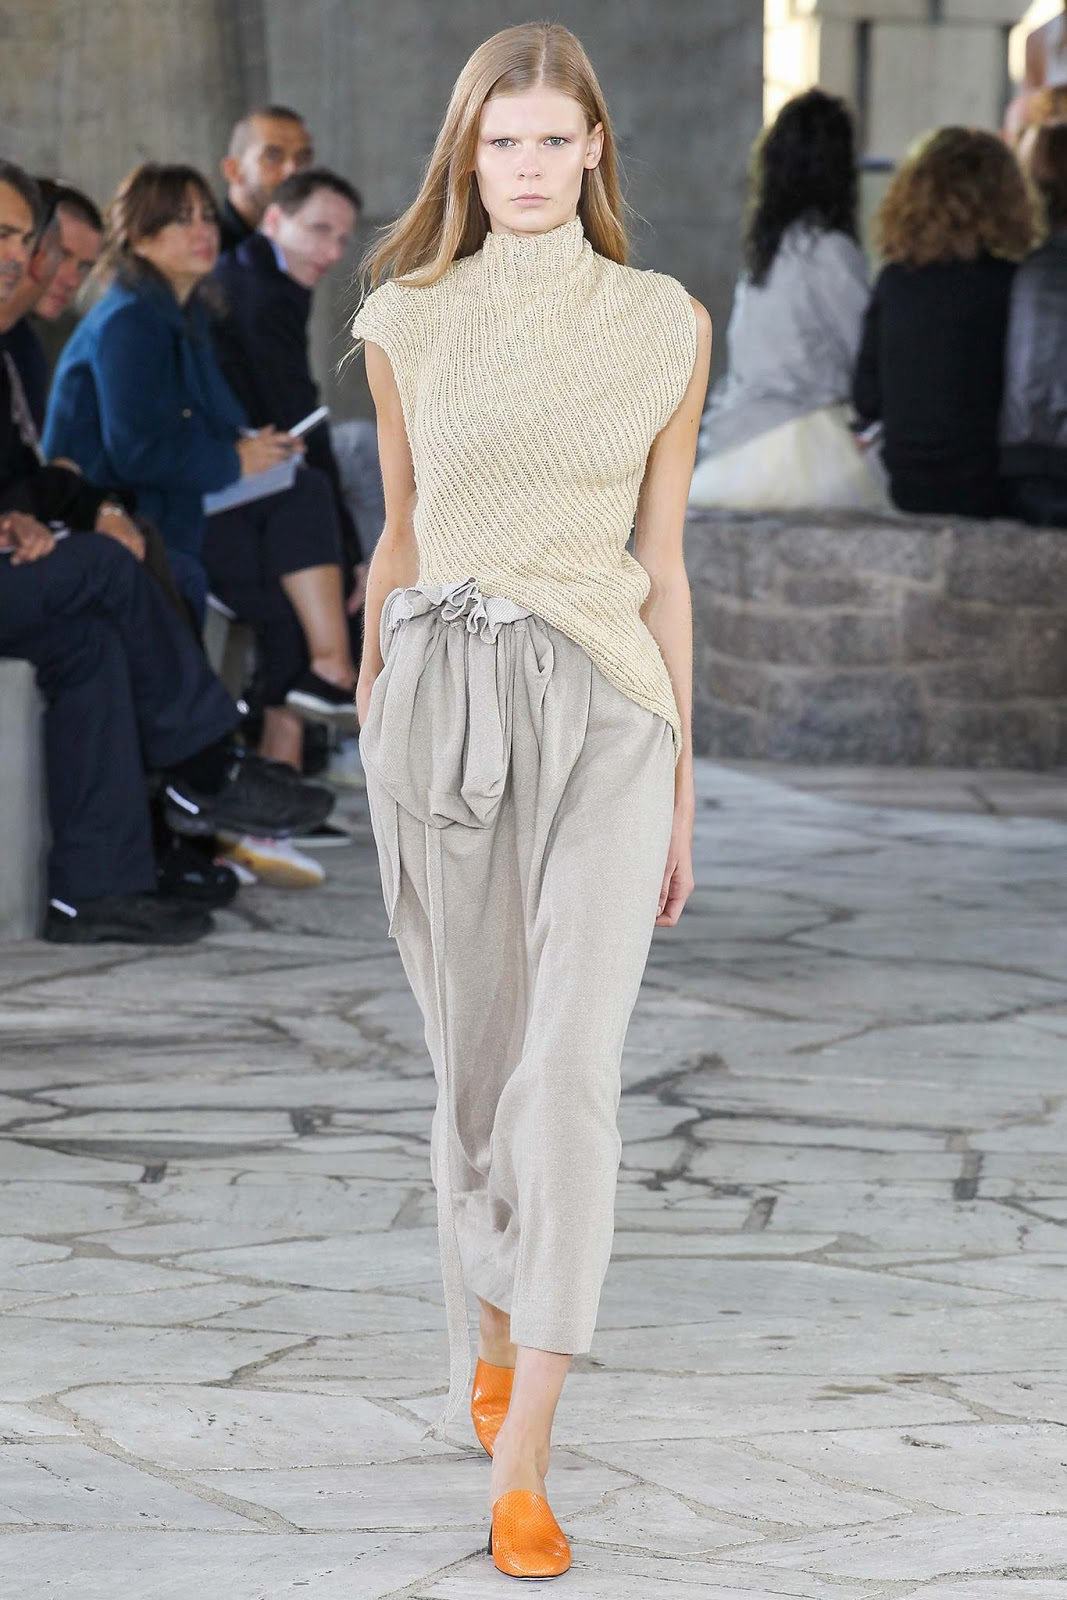 J W Anderson for Loewe Spring/Summer 2015 PFW Paris fashion week SS 15 September 2014 ready to wear collections